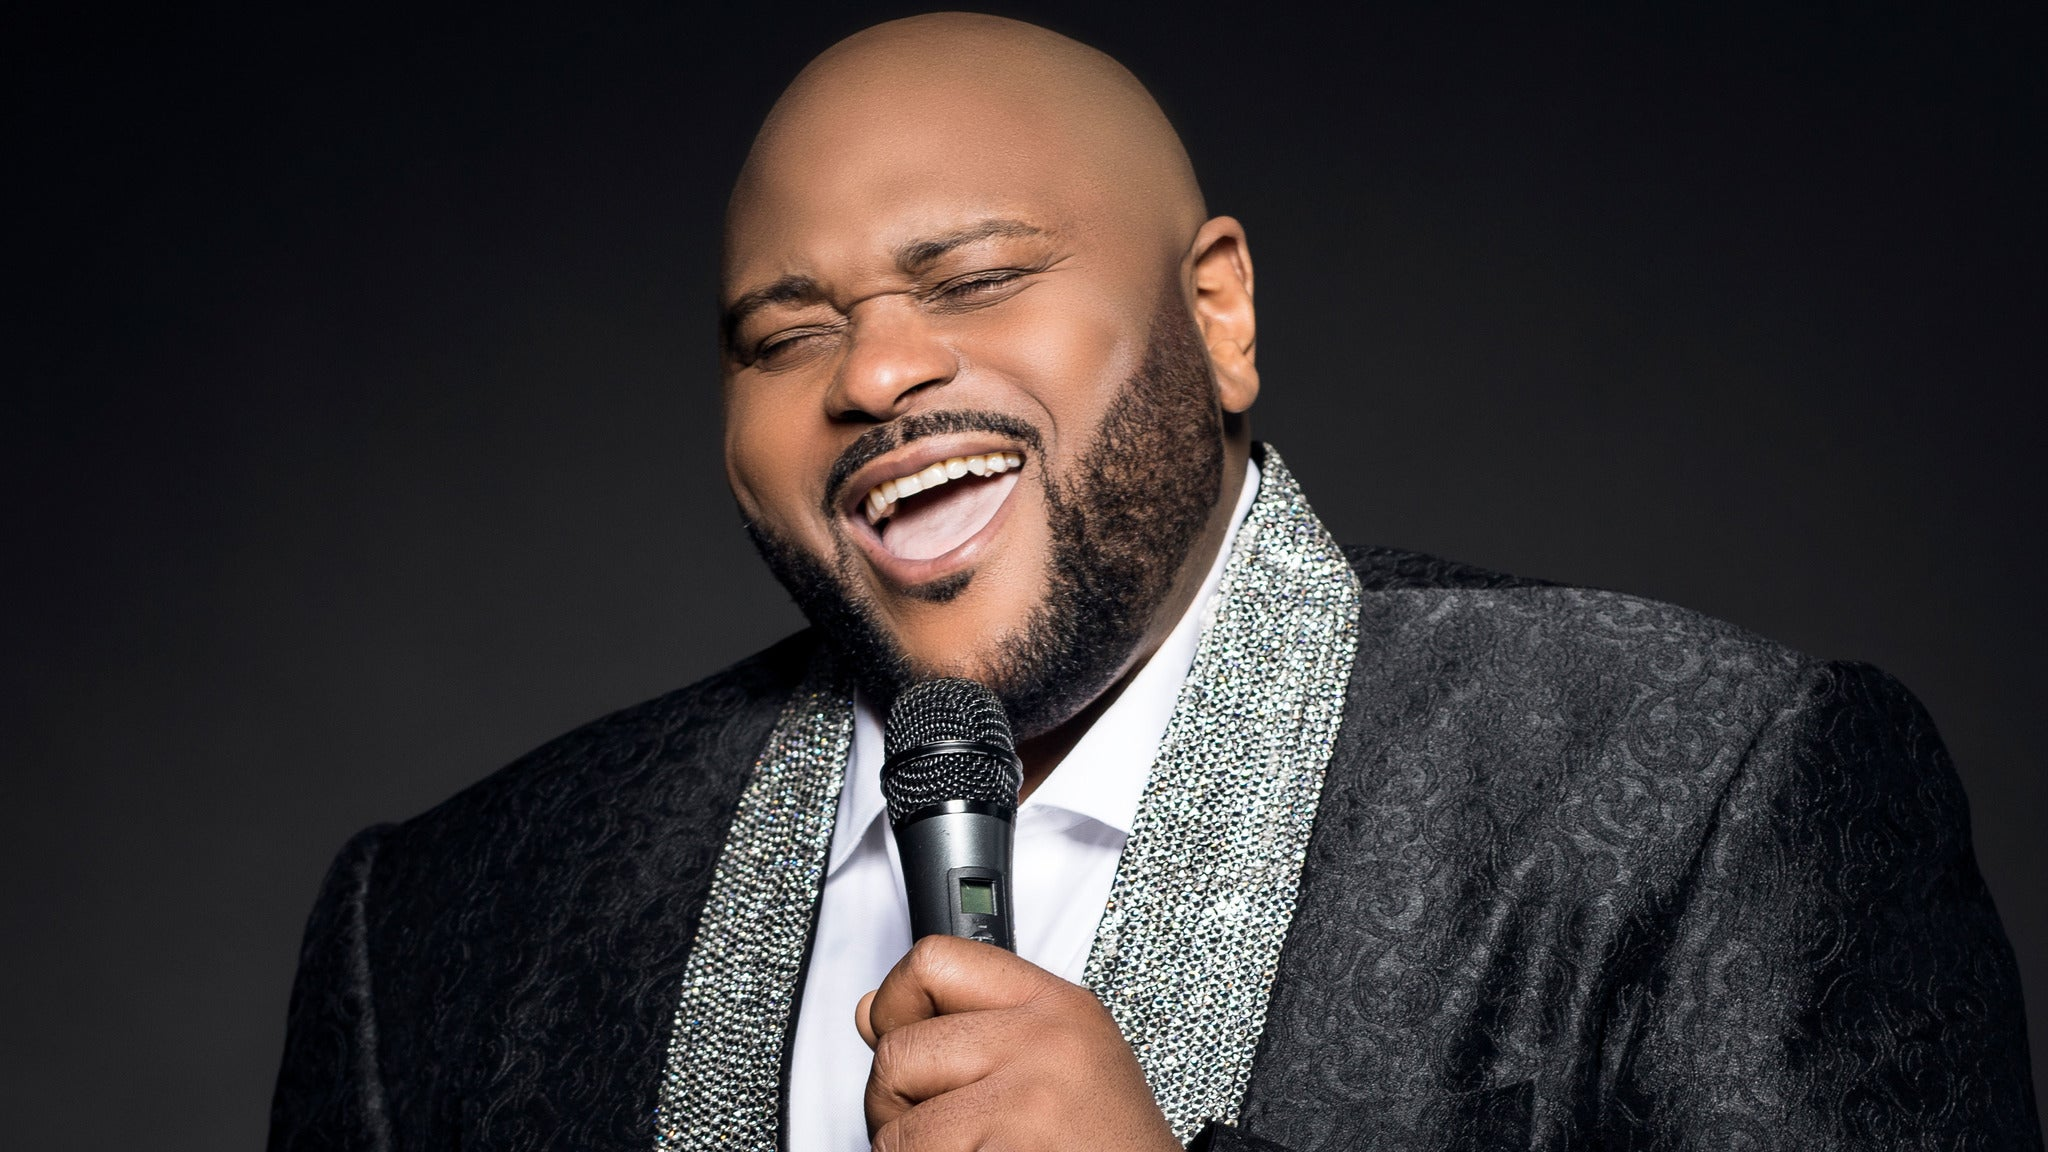 Ruben Studdard at Vilar Performing Arts Center - Avon, CO 81620